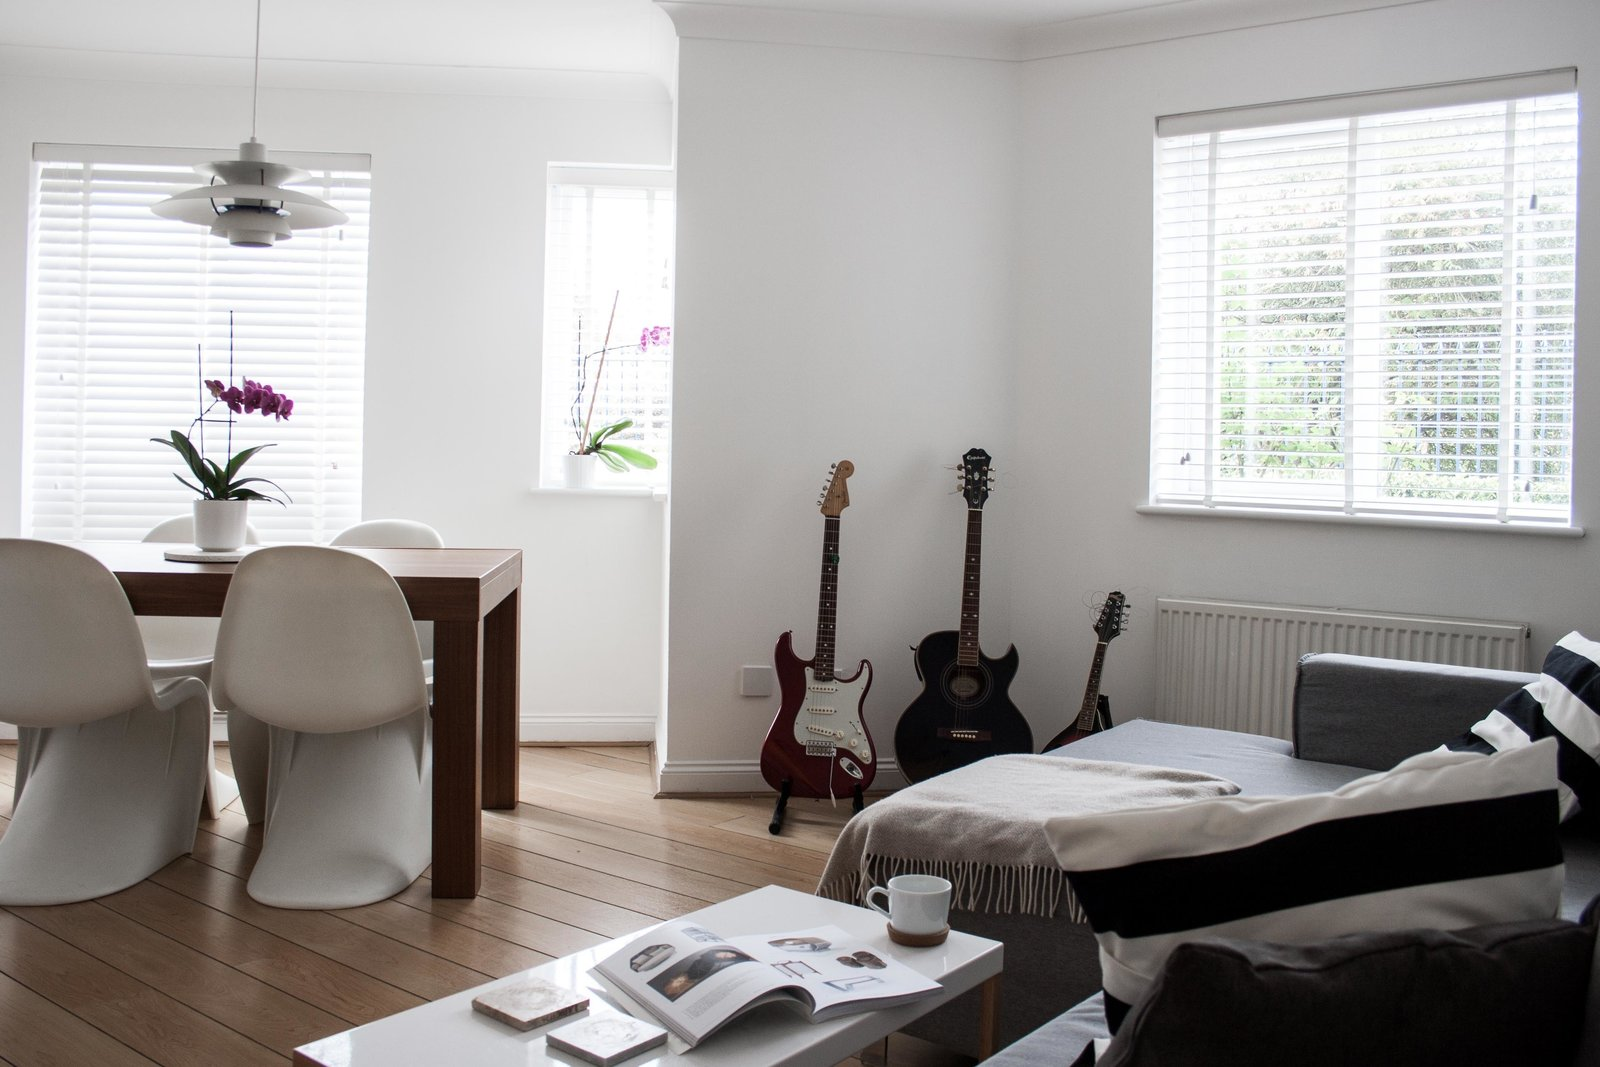 Photo 1 of 8 in Two Architects Revive Their London Flat With Minimal Furnishings and a Fresh Dose of White